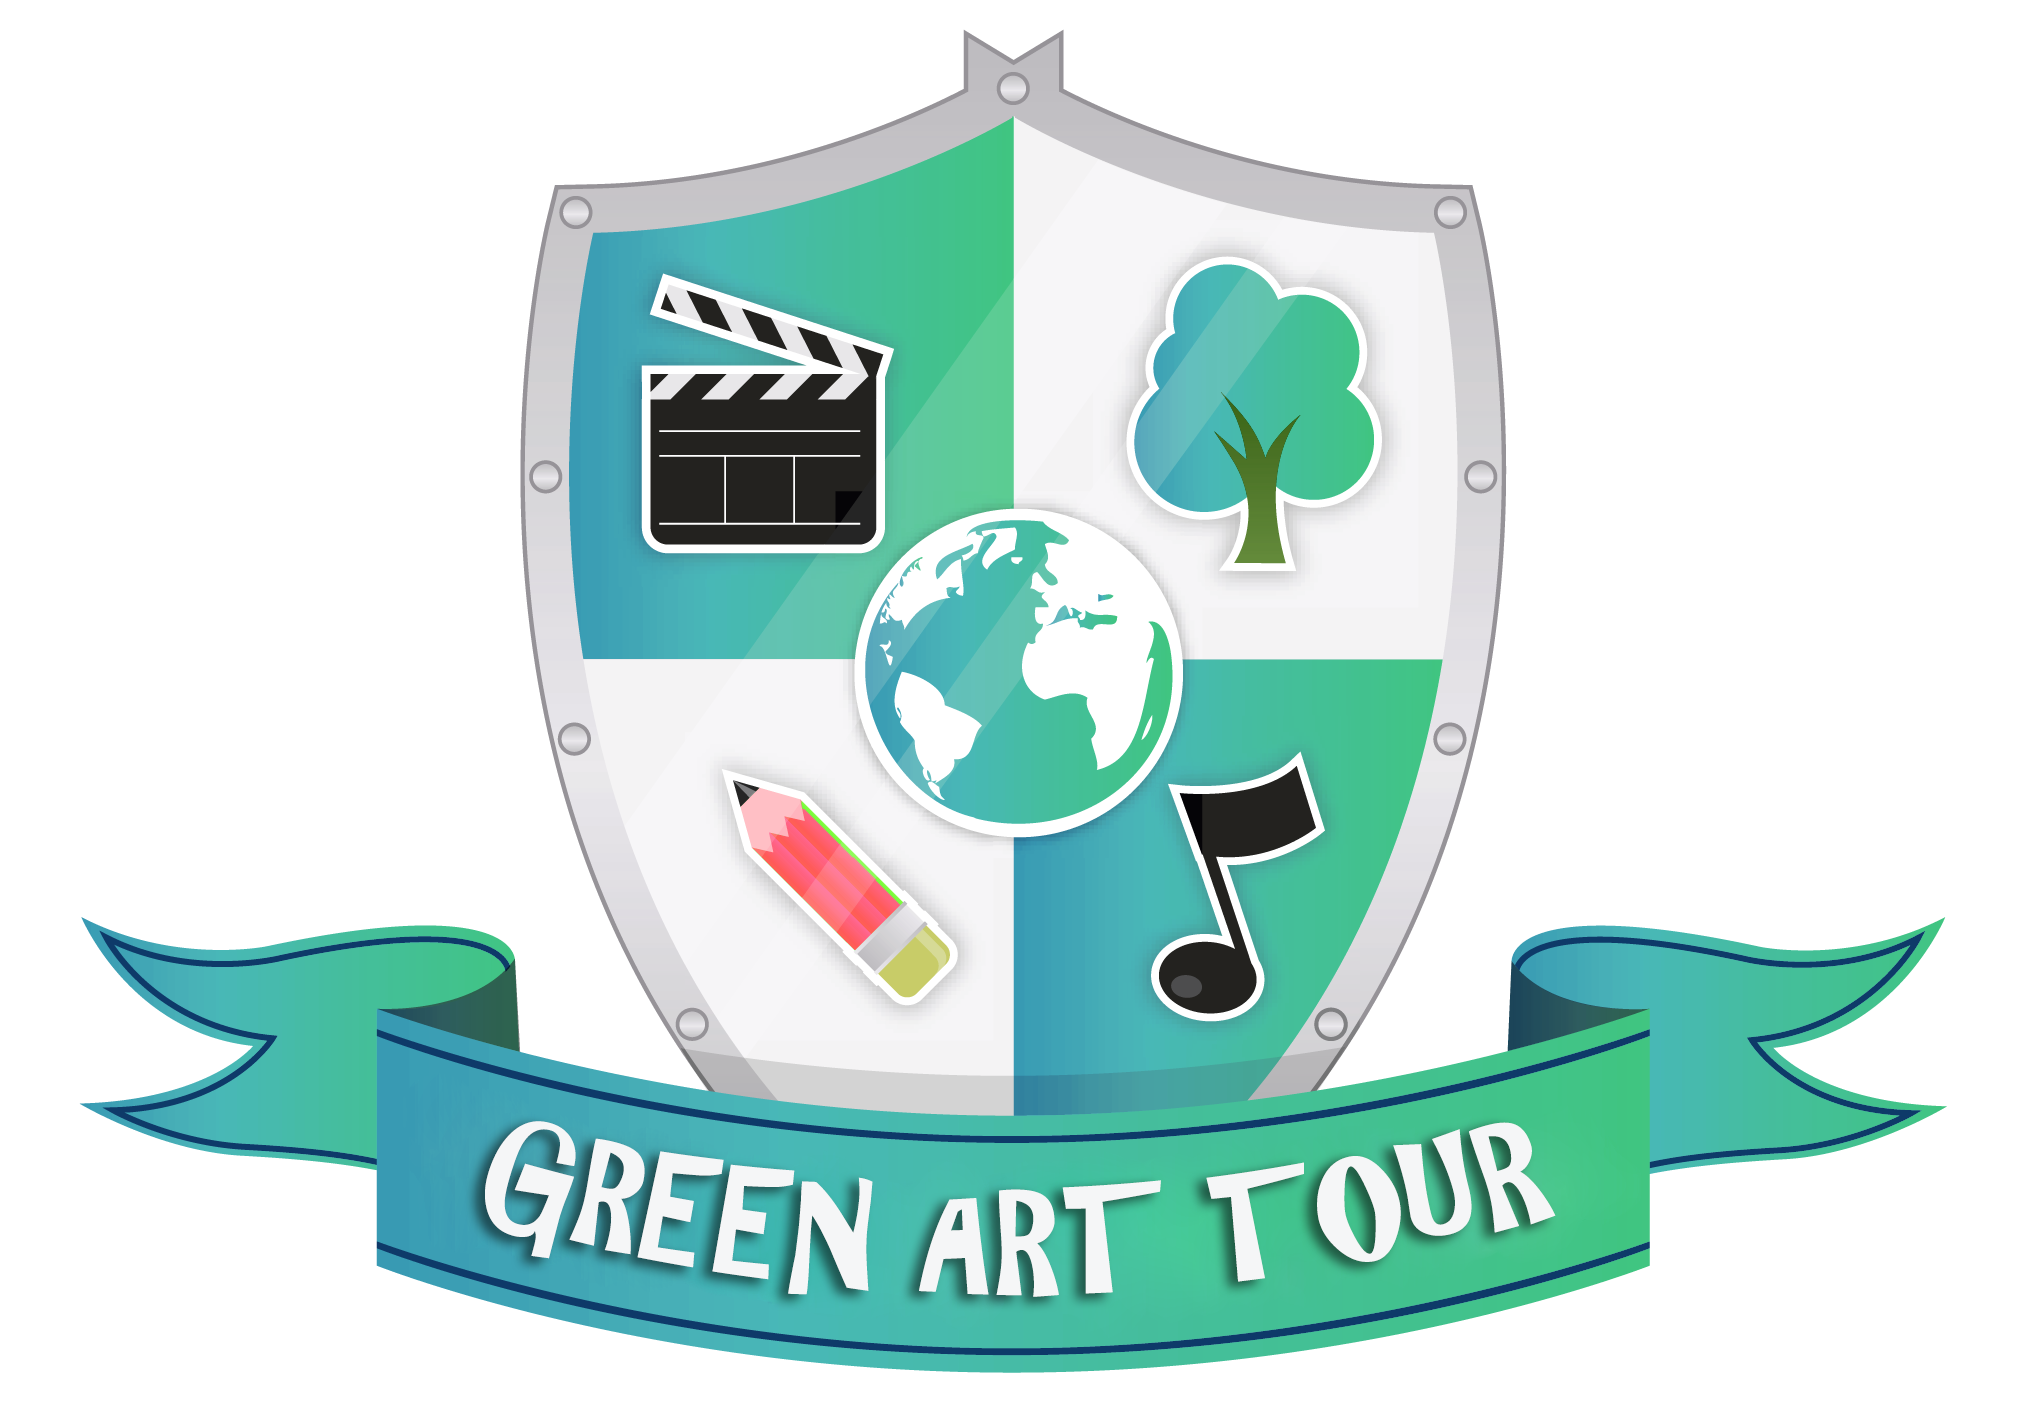 Green Art Tour